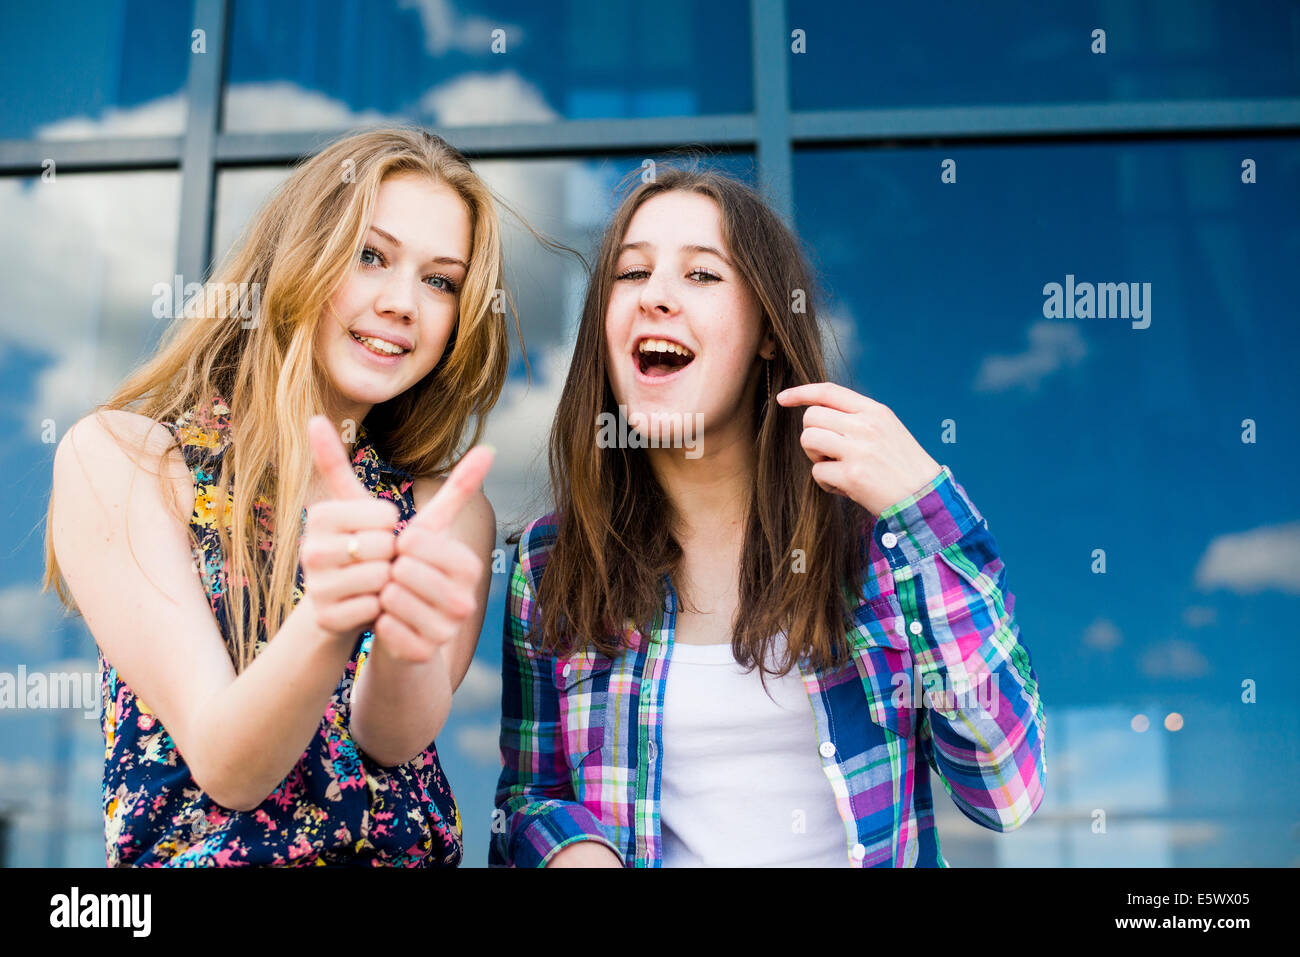 Portrait of two young women making thumbs up in front of glass fronted office - Stock Image